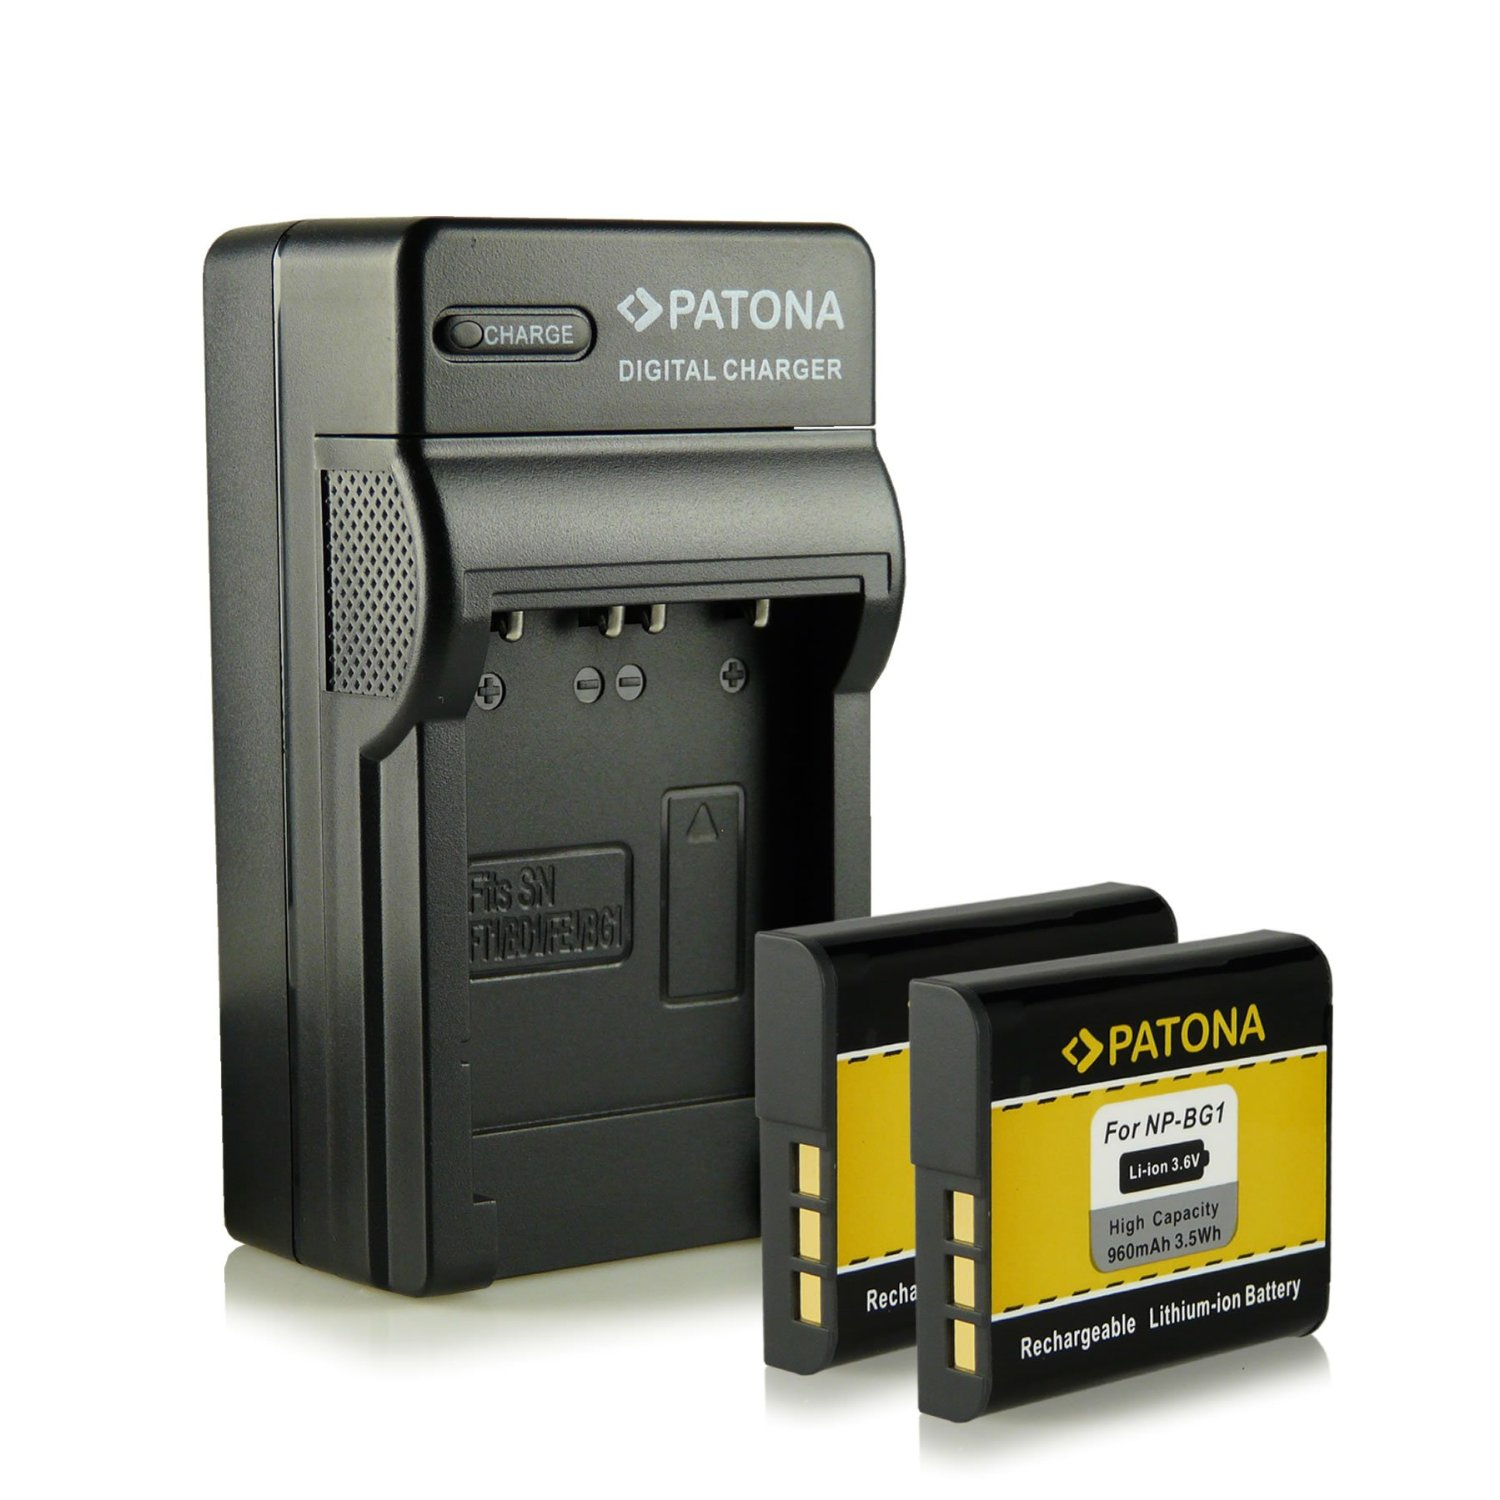 Bundle - 4in1 Charger + 2x Battery Sony NP-BG1 with Infochip · 100% compatible with Sony CyberShot DSC-H3 | DSC-H7 | DSC-H9 | DSC-H10 | DSC-H20 | DSC-H50 | DSC-H55 | DSC-H70 | DSC-H90 | DSC-HX5V | DSC-HX7V | DSC-HX9V | DSC-HX10V | DSC-HX20V | DSC-W30 | DSC-W35 | DSC-W40 | DSC-W50 | DSC-W55 and